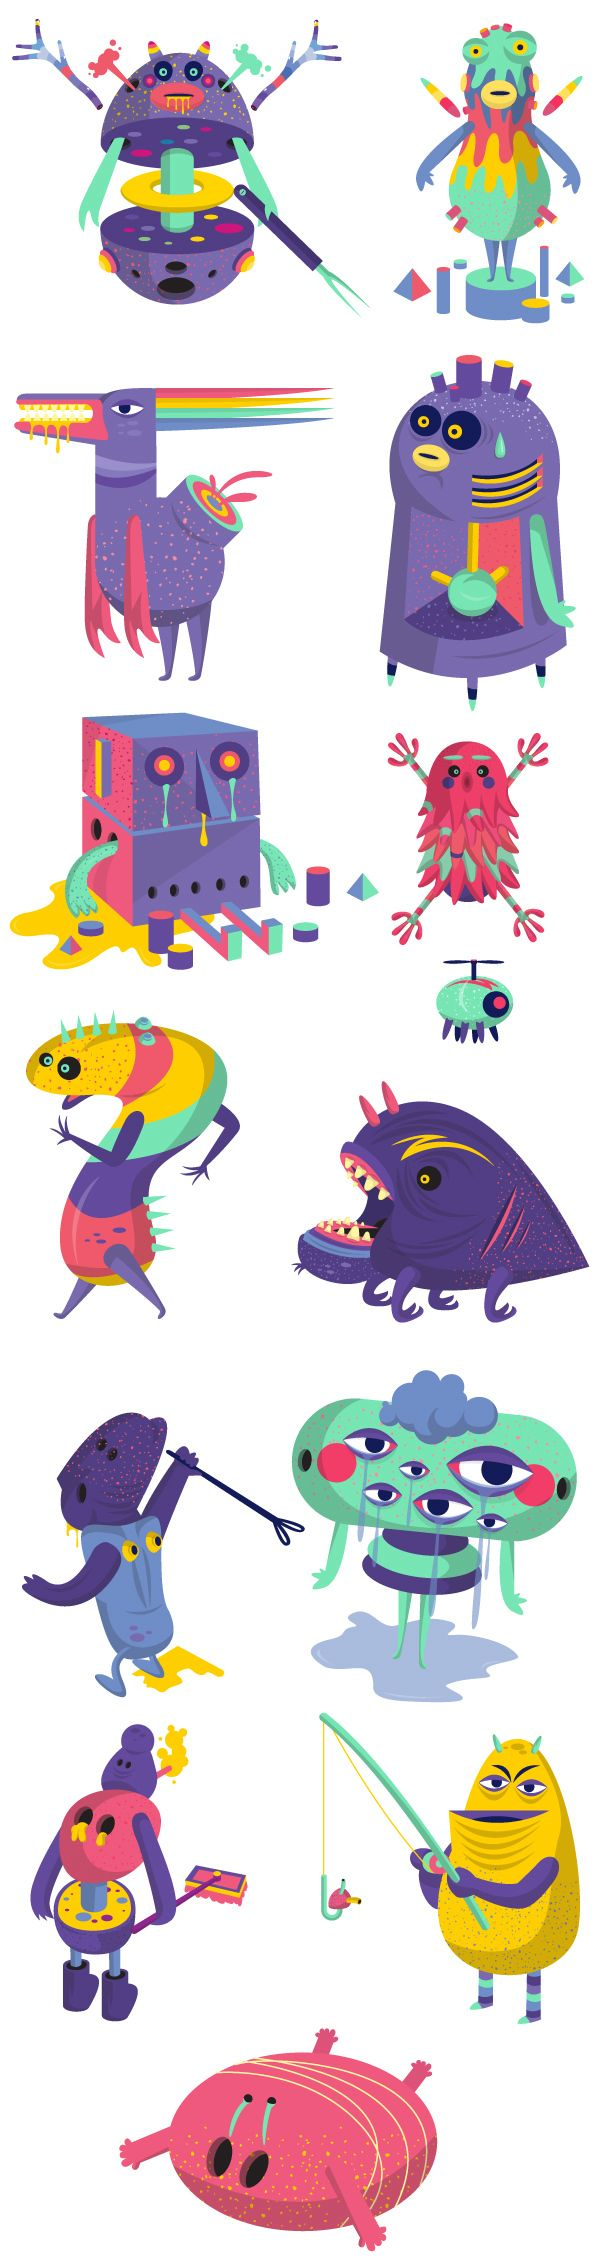 Offf Barcelona 2013 by David Pocull, via Behance